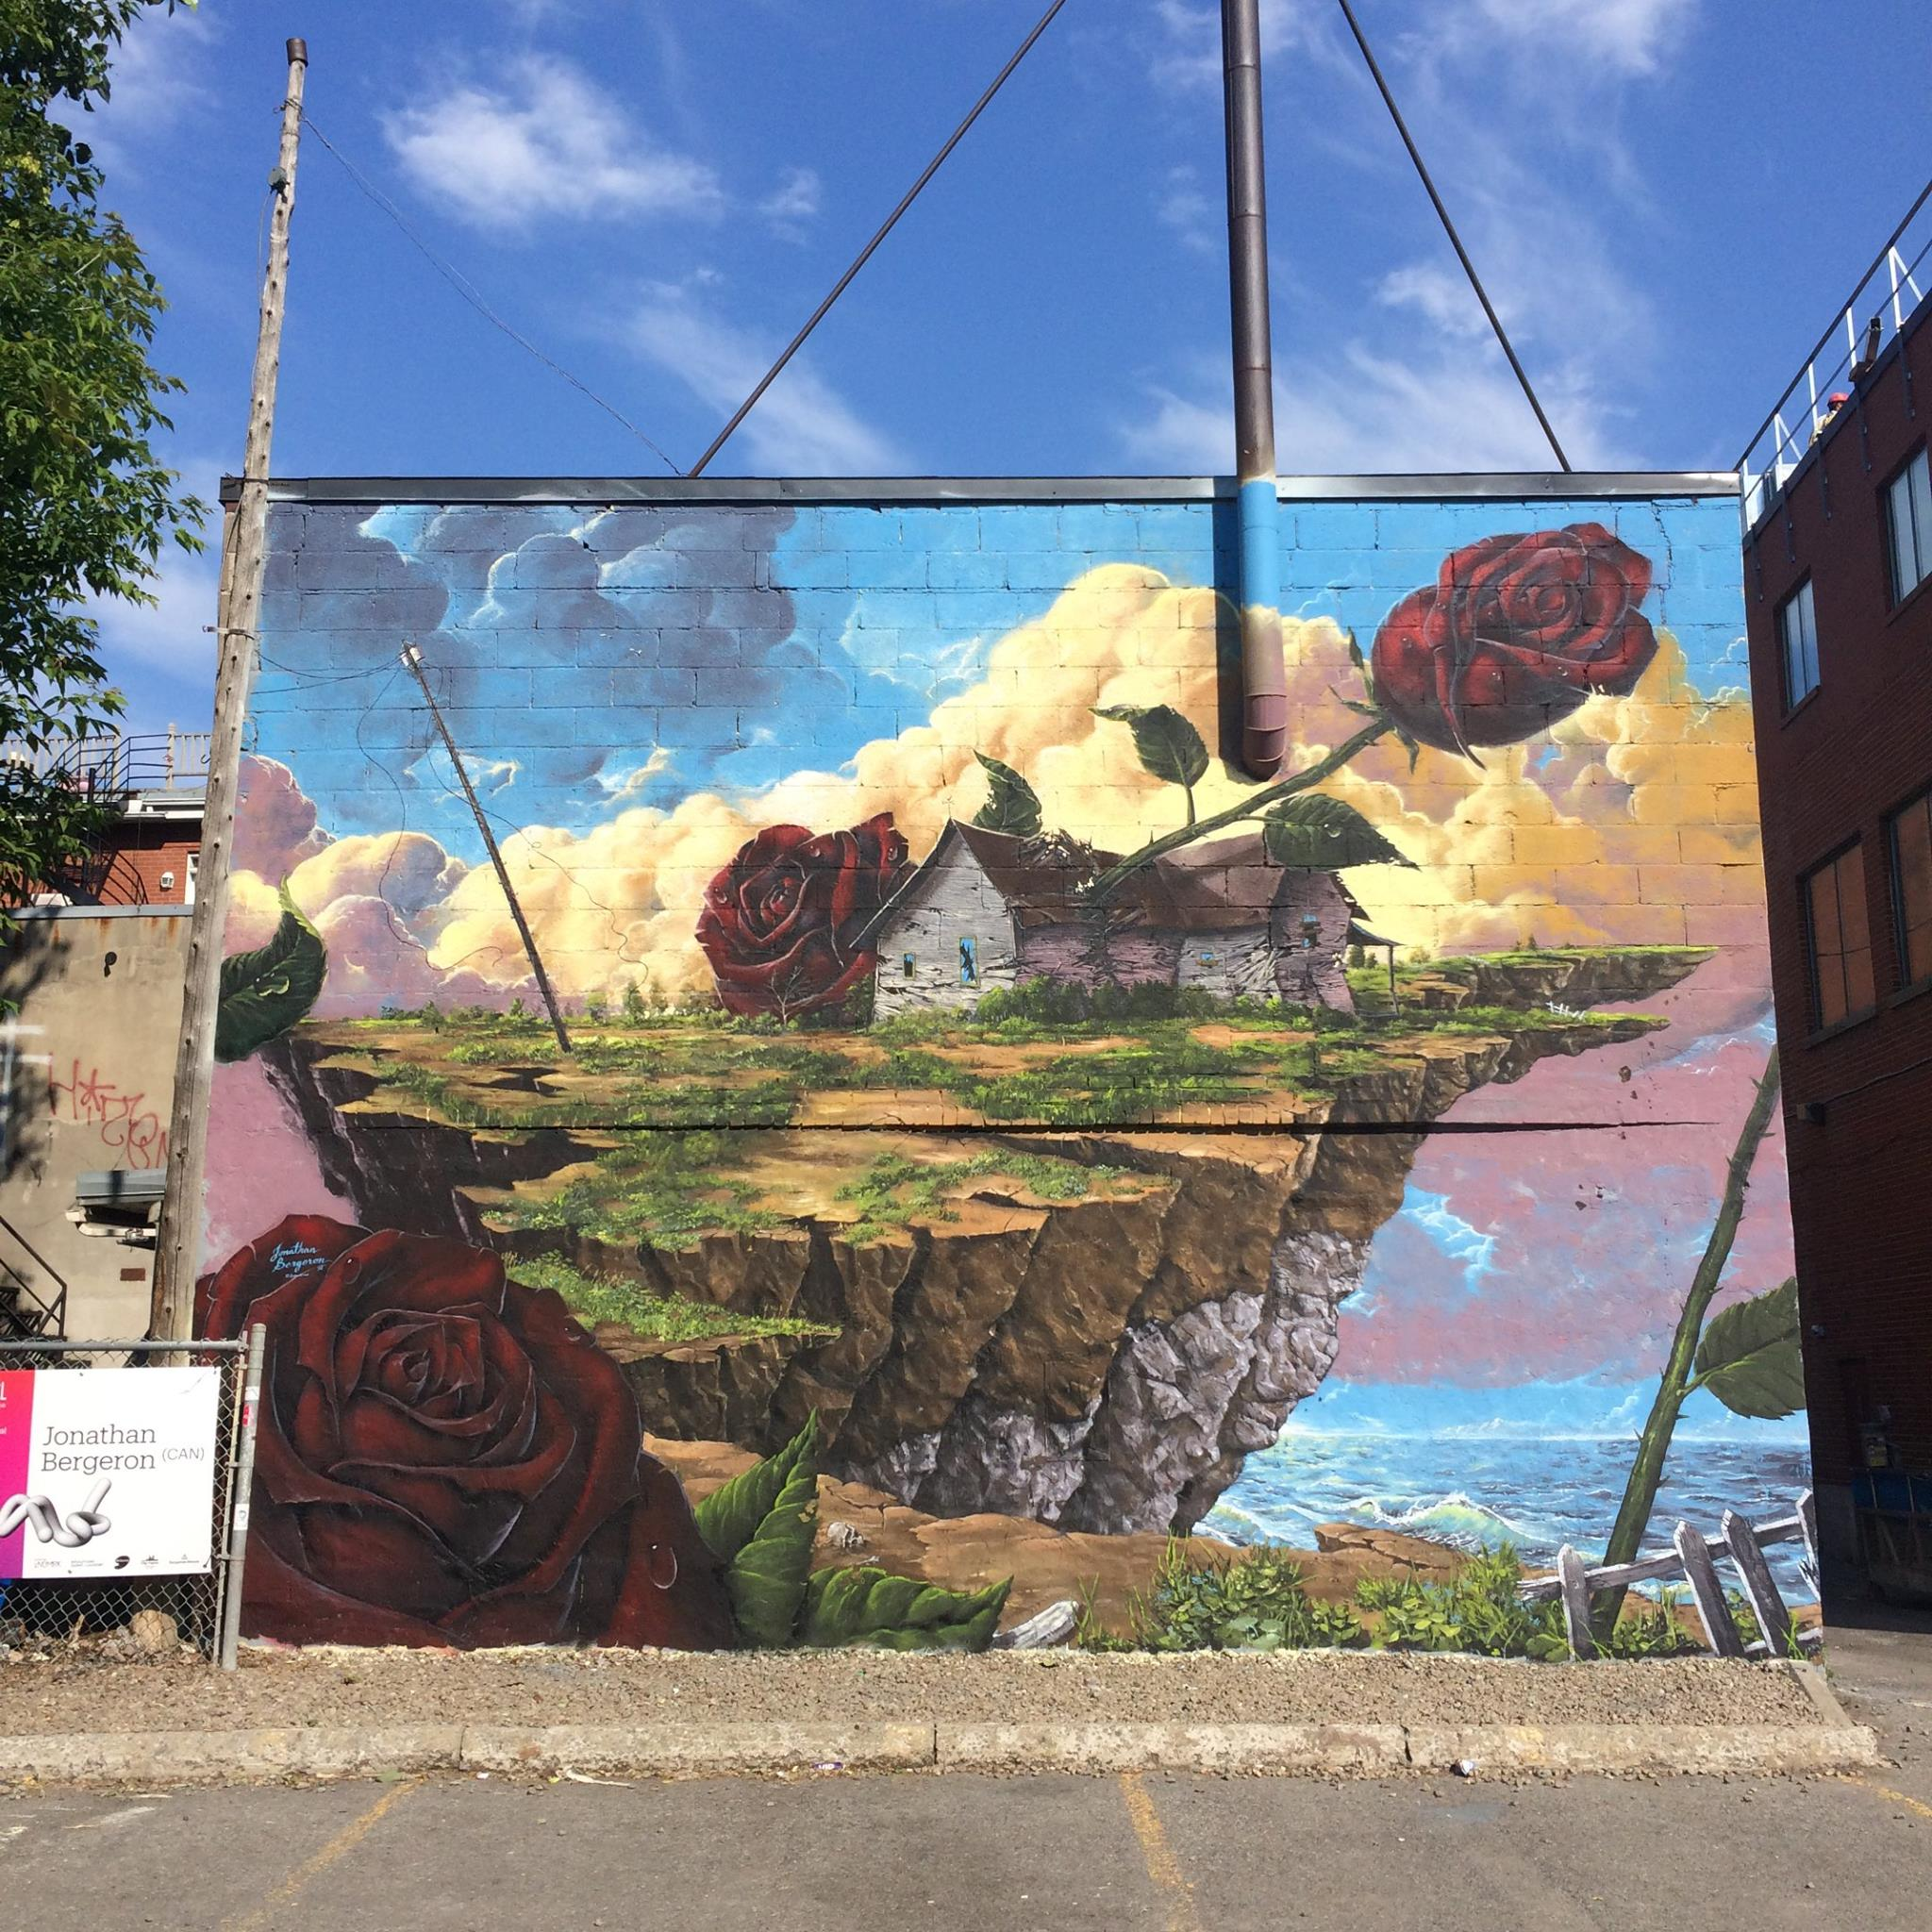 Jonathan Bergeron painted wall for Mural Festival in Montreal.